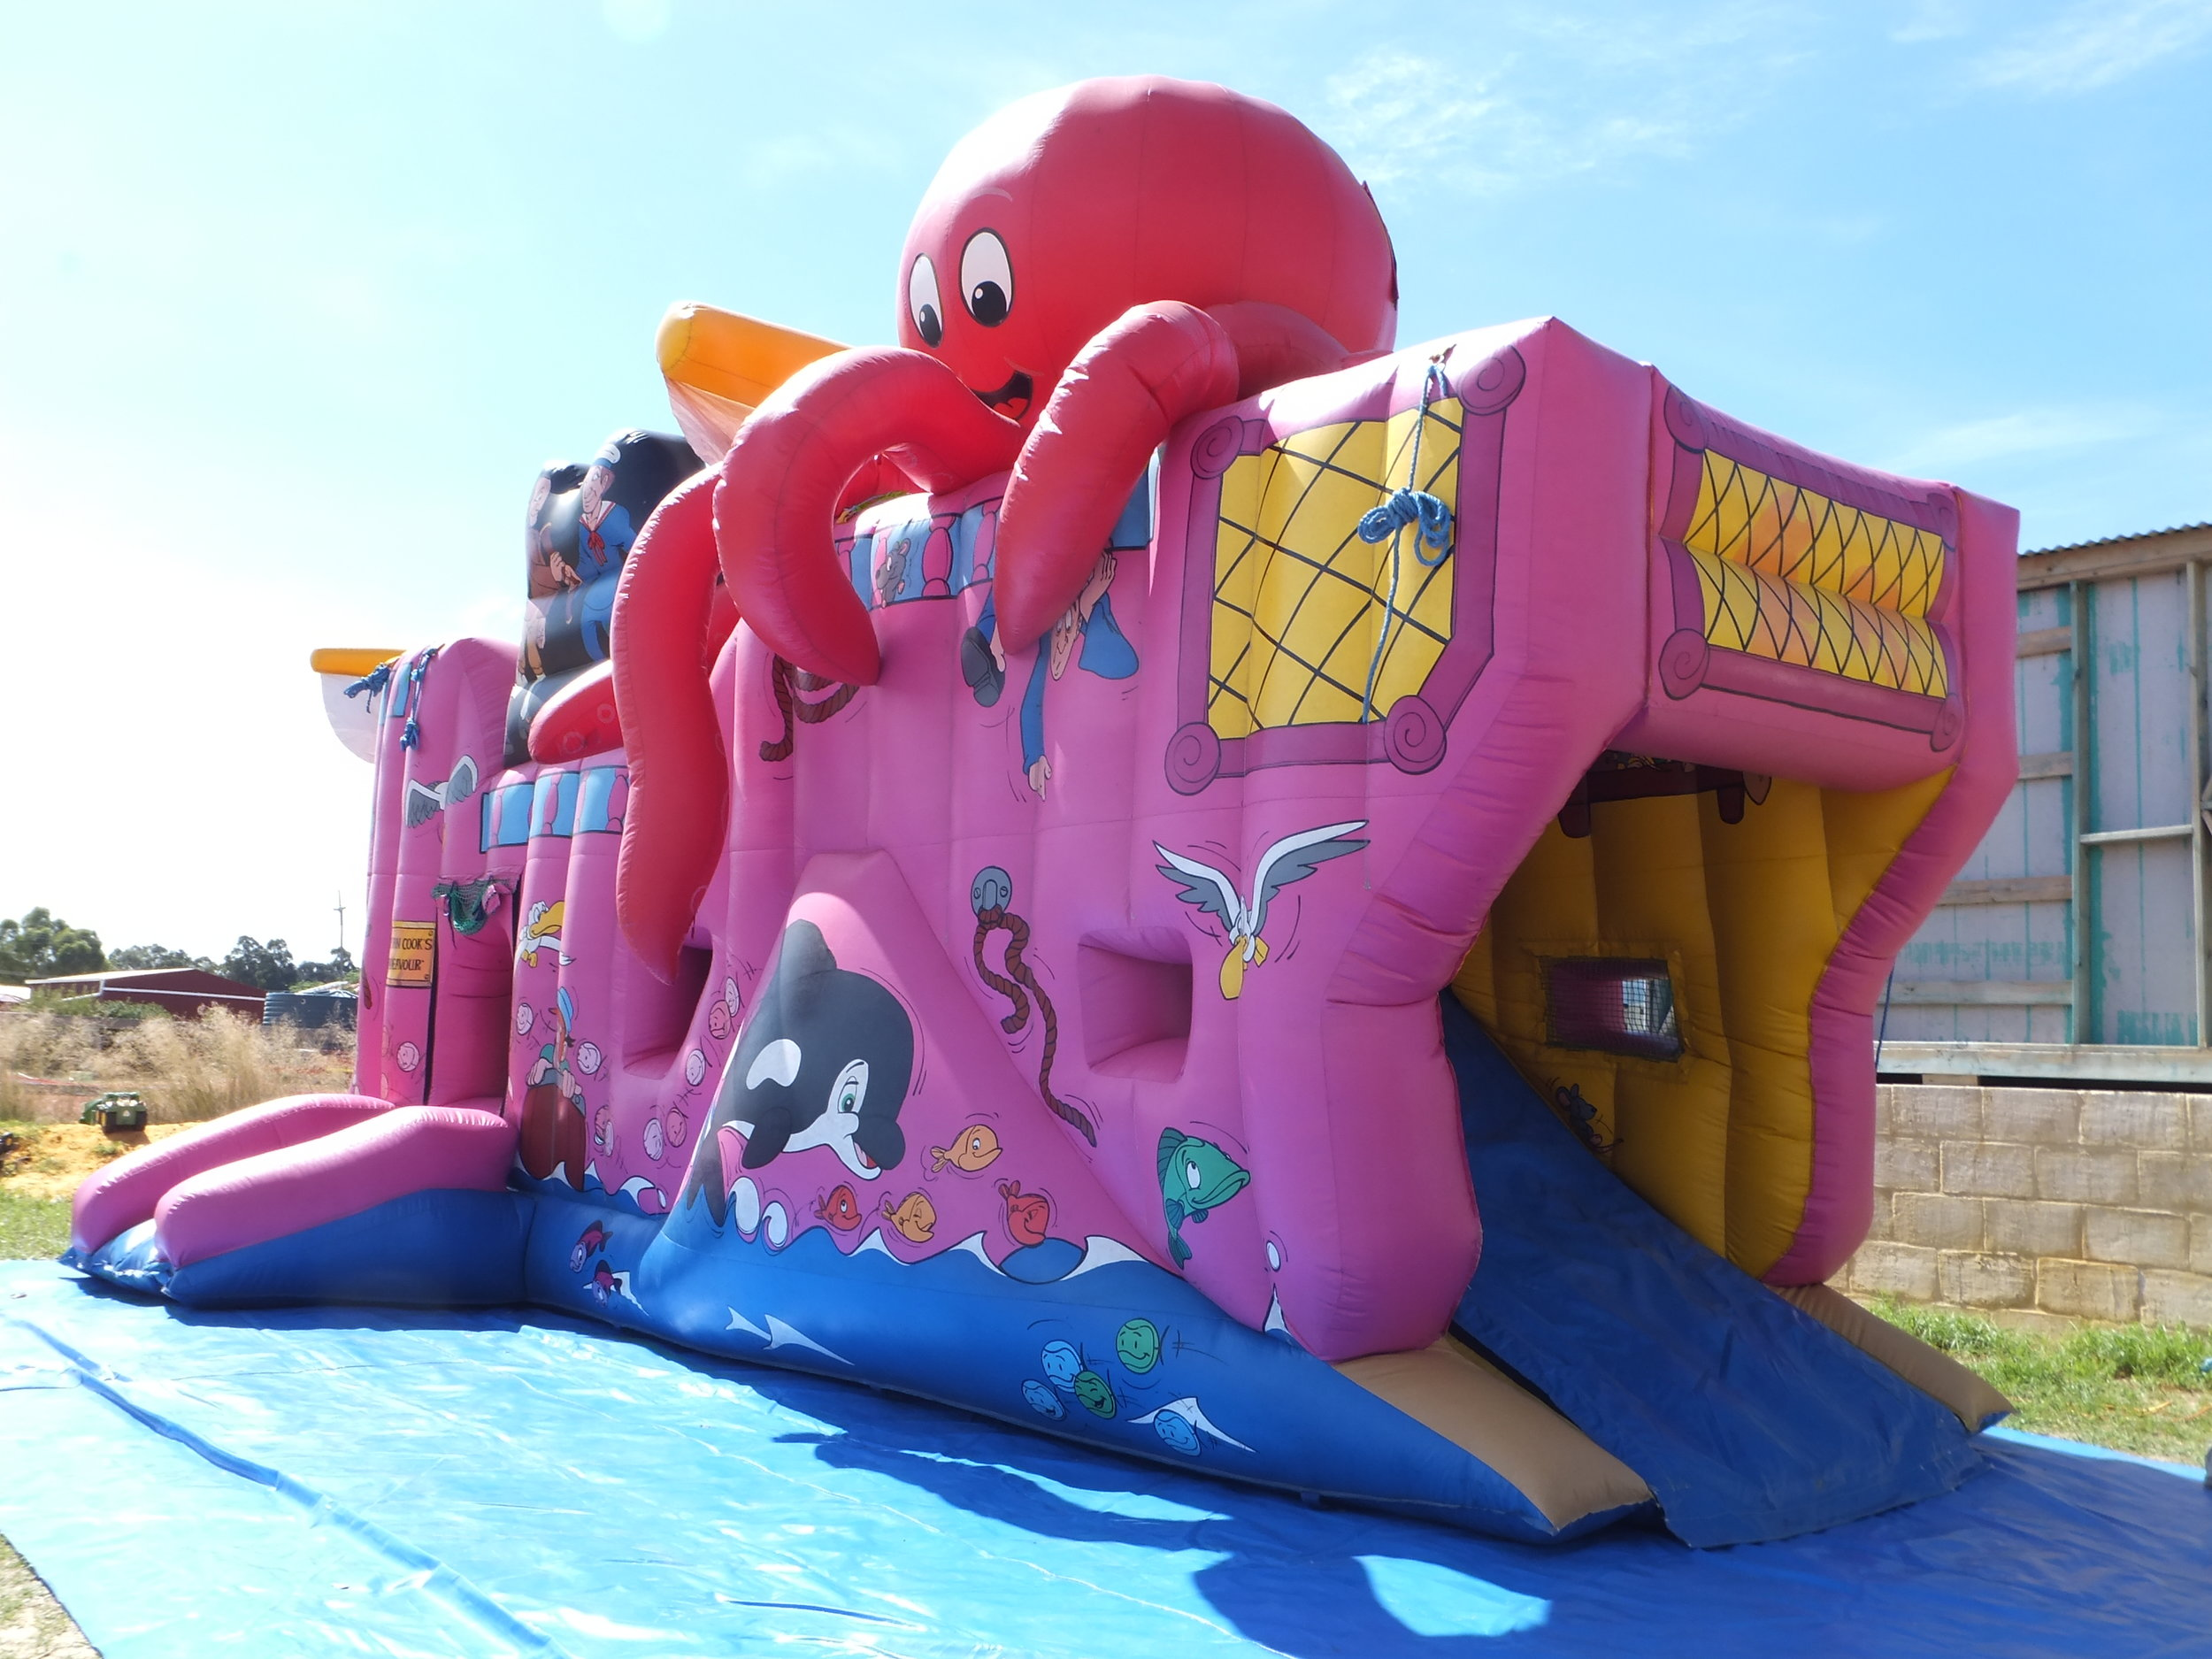 With it's giant octopus our Captain Cook Bouncy Castle is visually appealing -